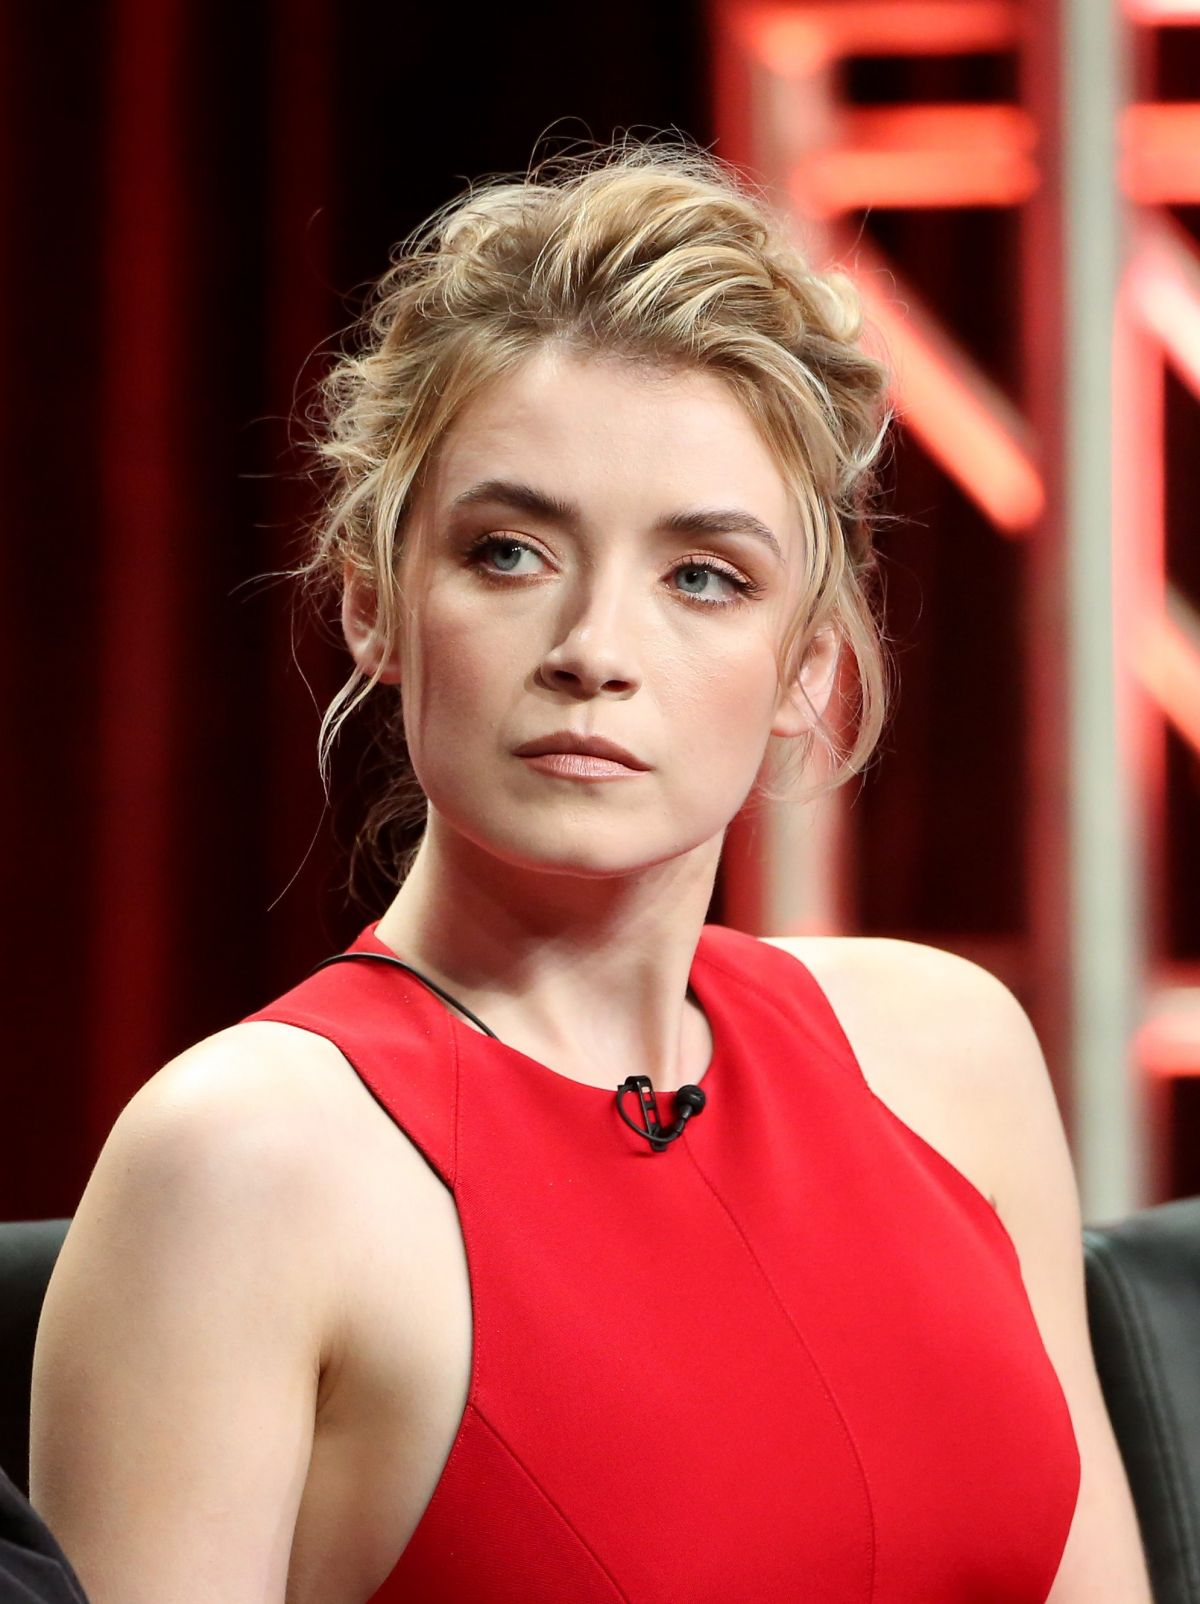 Fotos Sarah Bolger nude (83 photo), Topless, Hot, Feet, underwear 2015